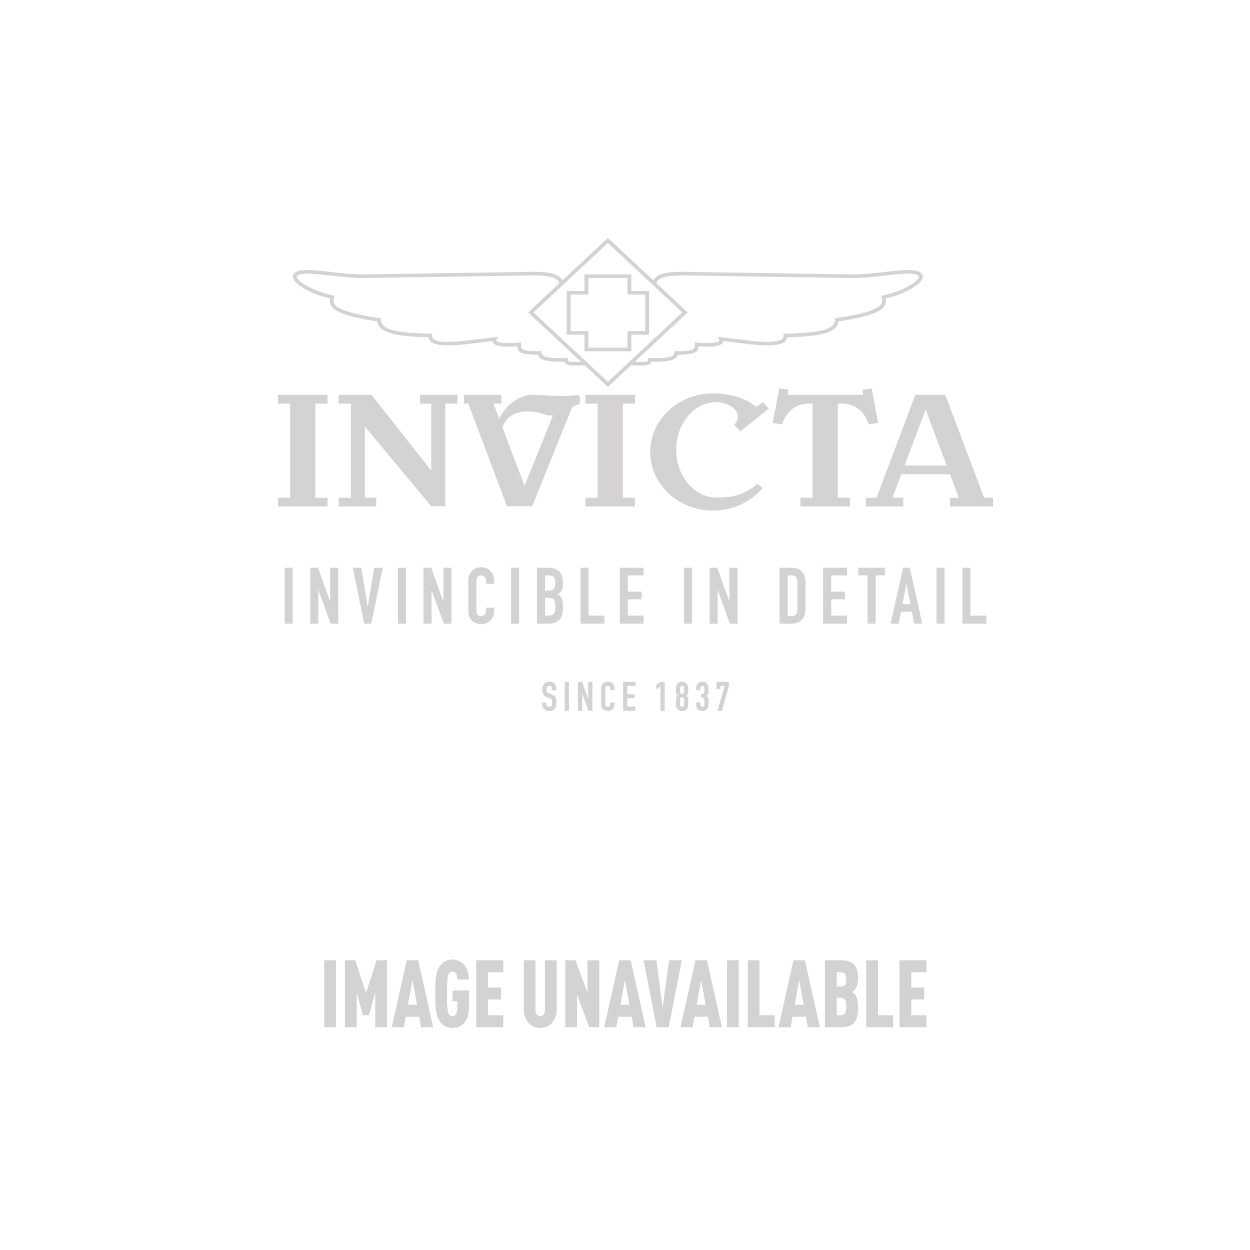 Invicta Pro Diver Quartz Watch - Gold, Stainless Steel case Stainless Steel band - Model 12979